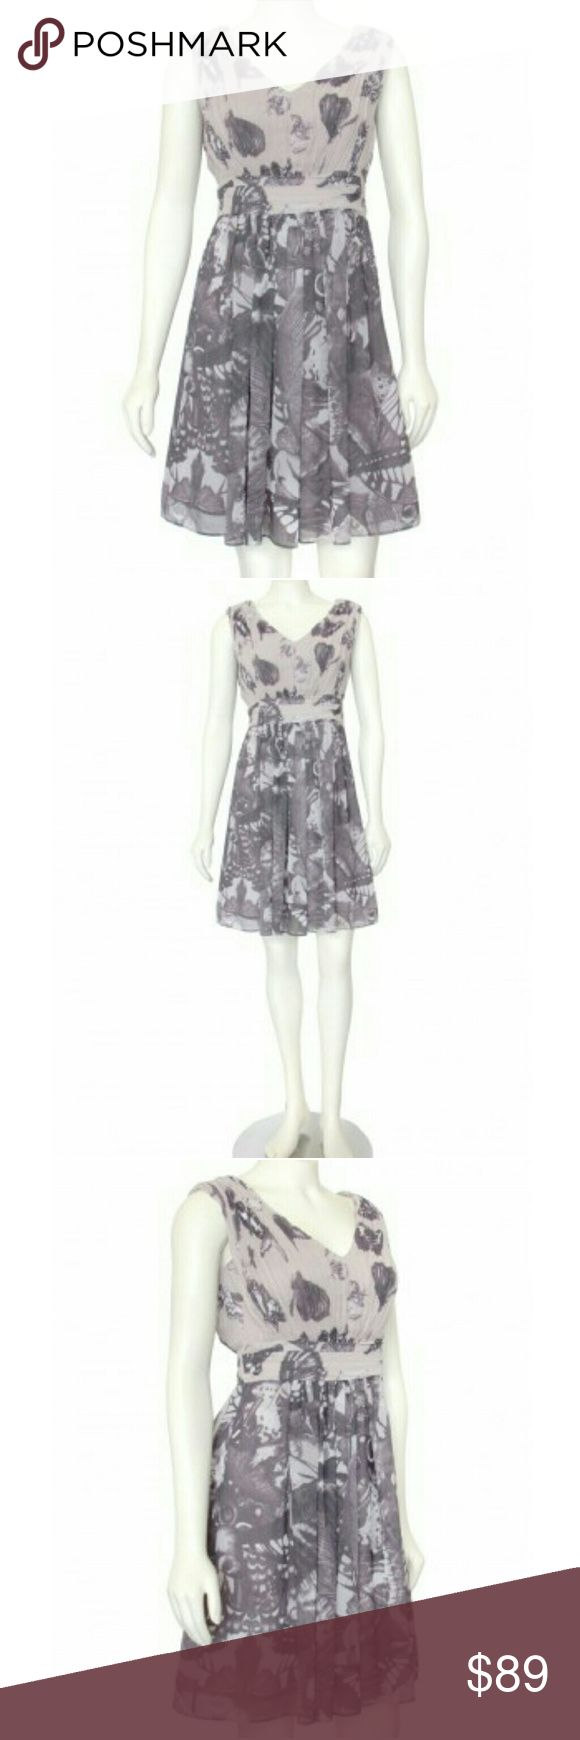 "Ted Baker Yamka Butterfly Dress Designer: Ted Baker. Ted Size: 1 / 4 US. Print / Color: Mauve Purple Multi. Material: 100% Polyester. Lining: 100% Polyester. Fully Lined. Hidden Side Zip. New without Tags. Machine Wash Cold. Imported.   Measurements:	16"" Armpit to Armpit, ~25"" Waist, ~34-38"" Hips, ~27.5"" Length from Armpit, 34.5"" Length from Shoulder.   💖 Insta Chic Party Ted Baker London Dresses"